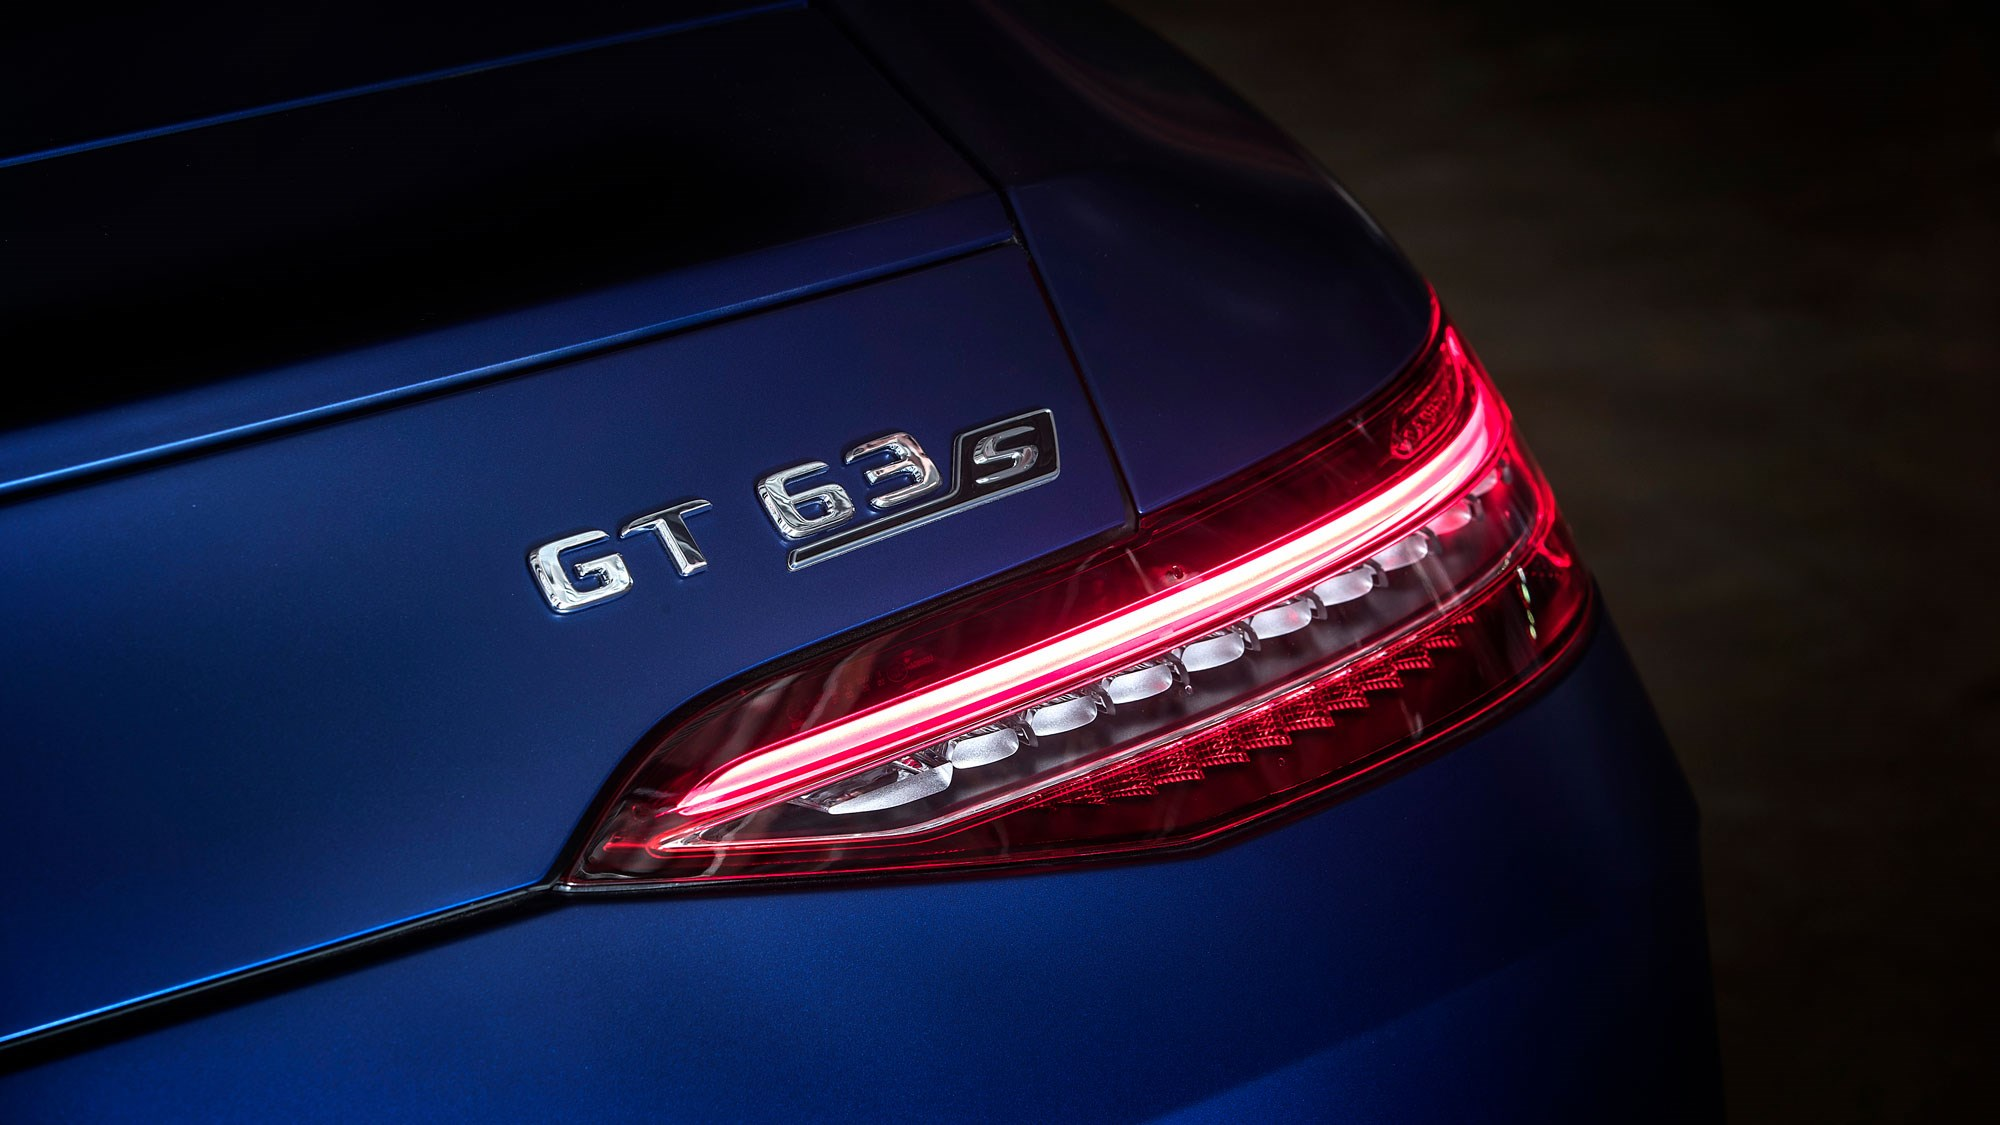 AMG GT 63S badge